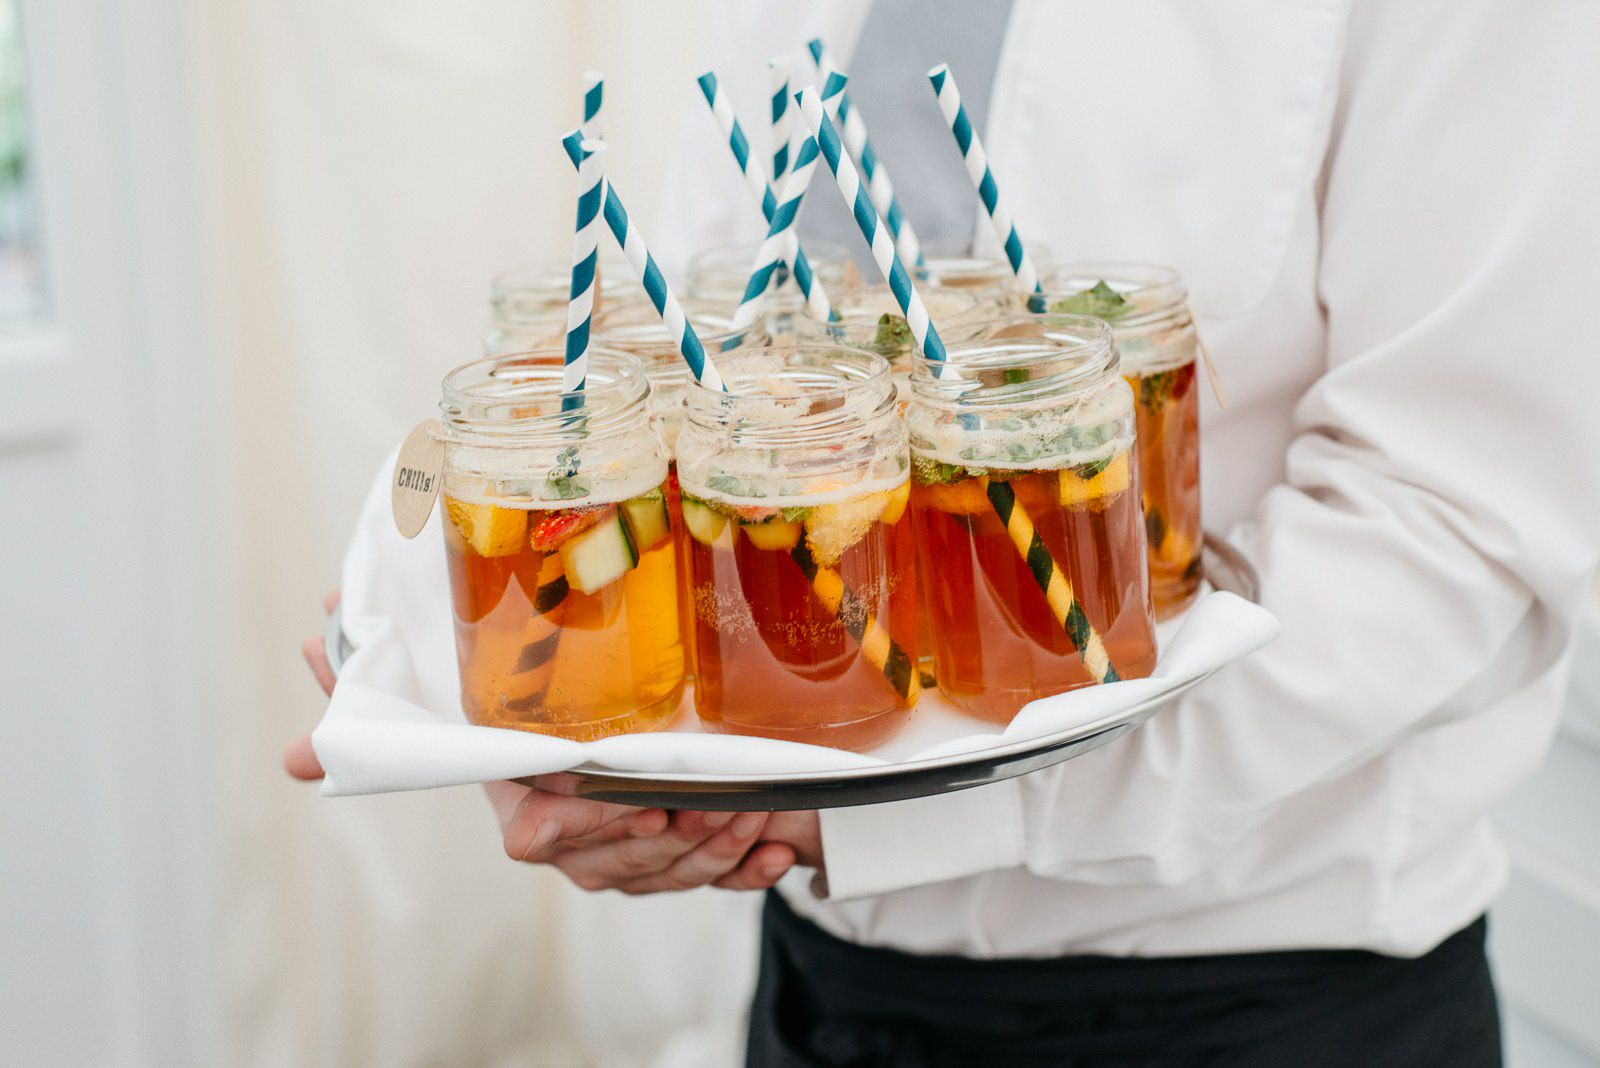 Cocktails in jars at alternative, quirky Ayrshire wedding